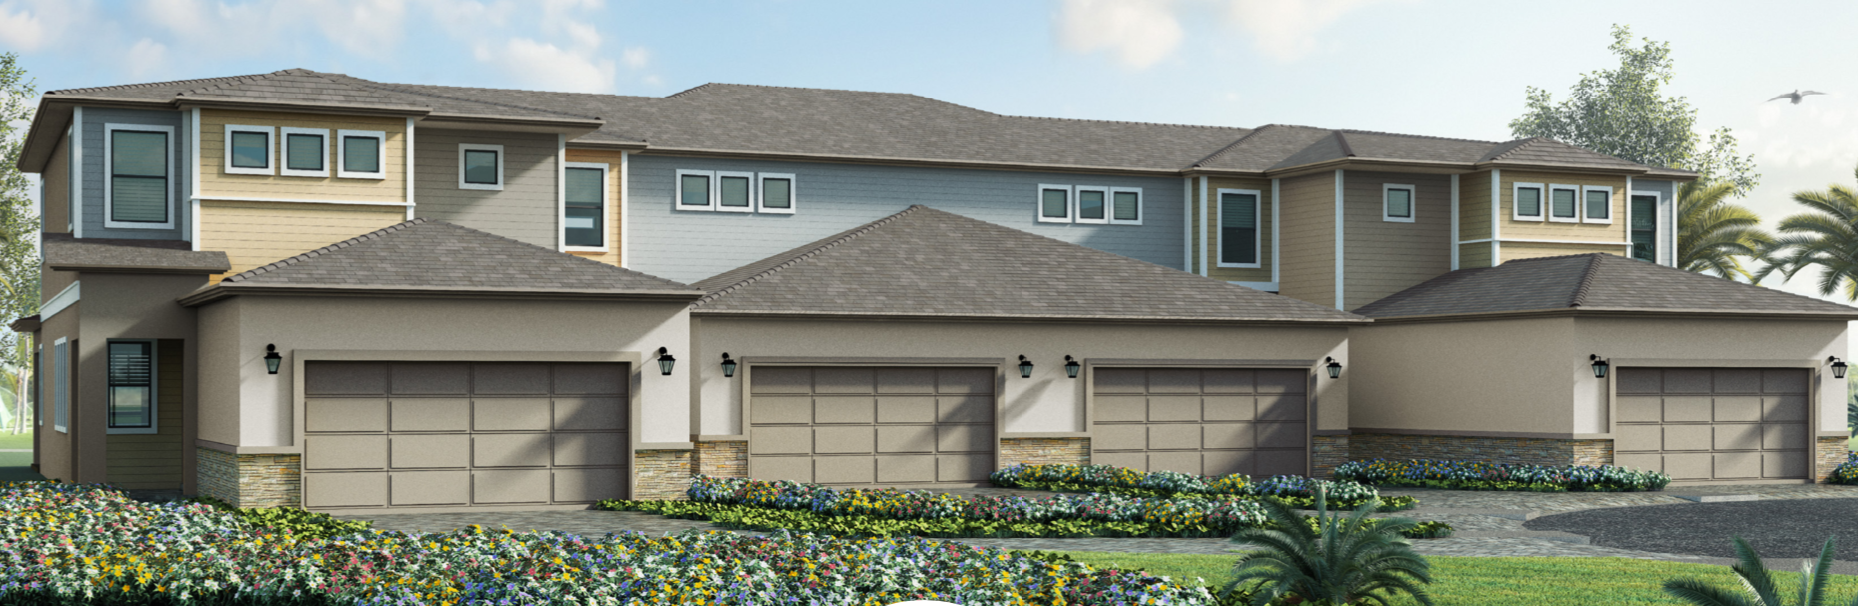 Eagle Trace Reunion Townhome Elevations